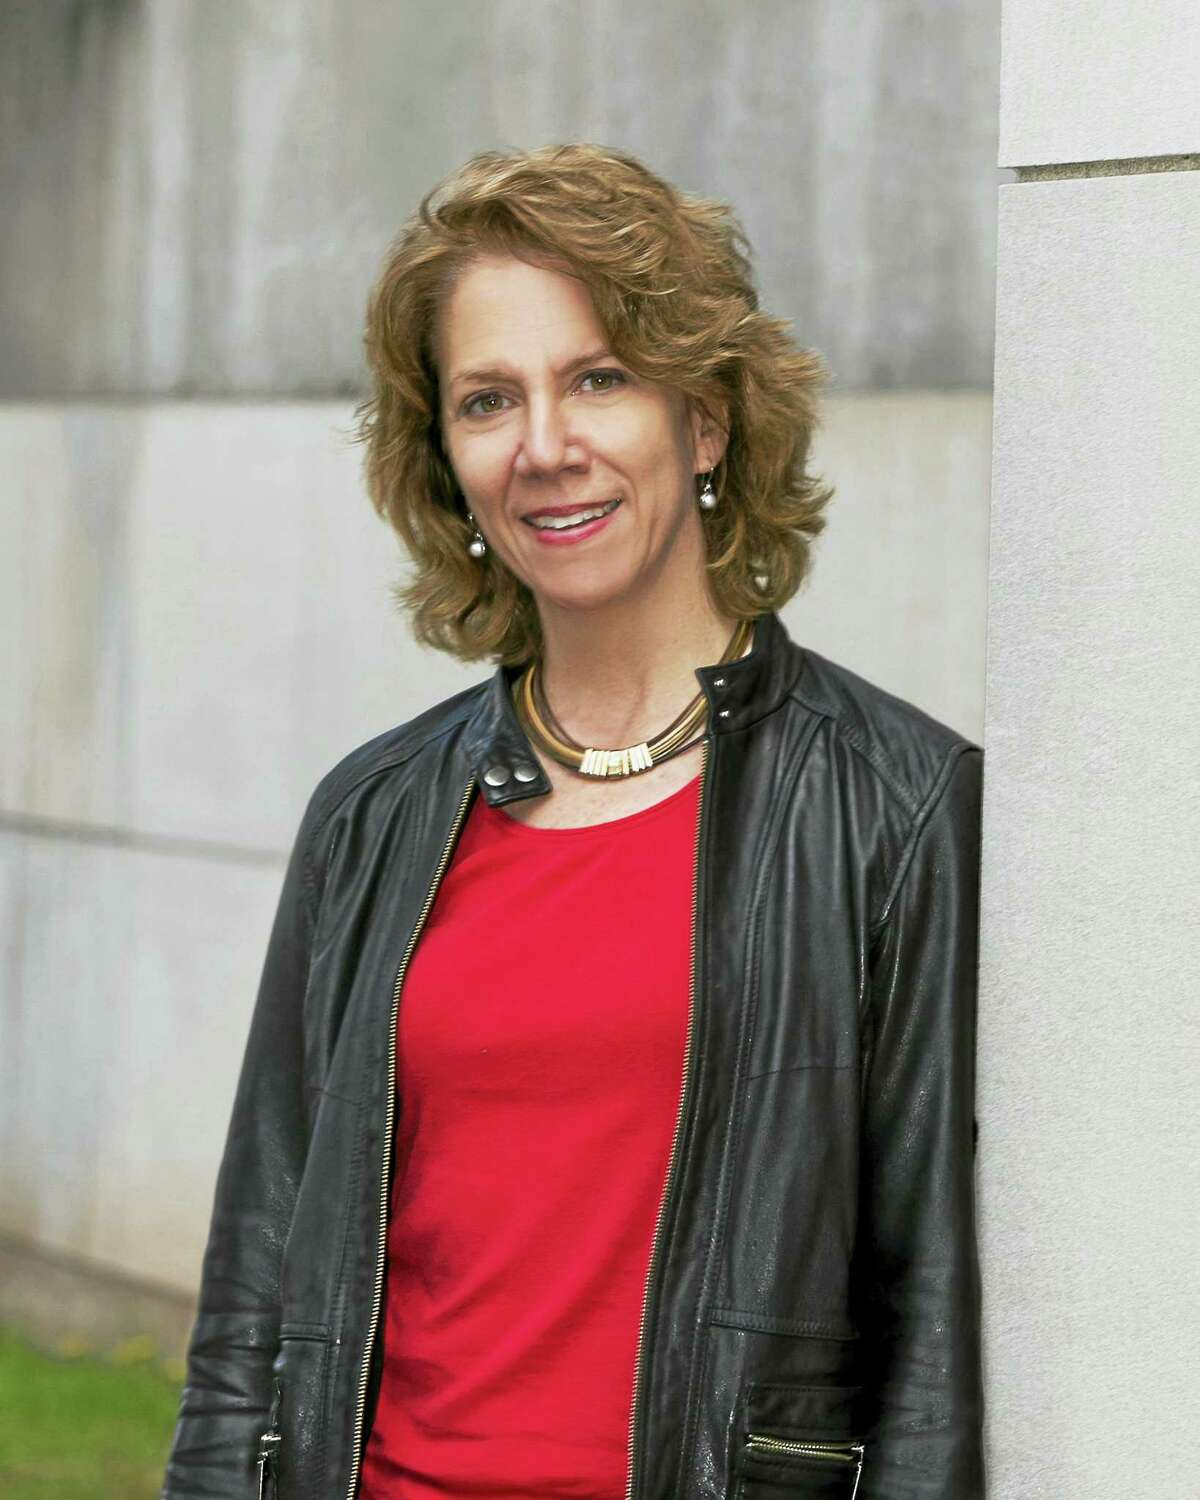 Pamela Tatge, director of the Wesleyan University Center for the Arts in Middletown, has accepted a leadership role at Jacob's Pillow Dance Festival in Becket, Massachusetts.